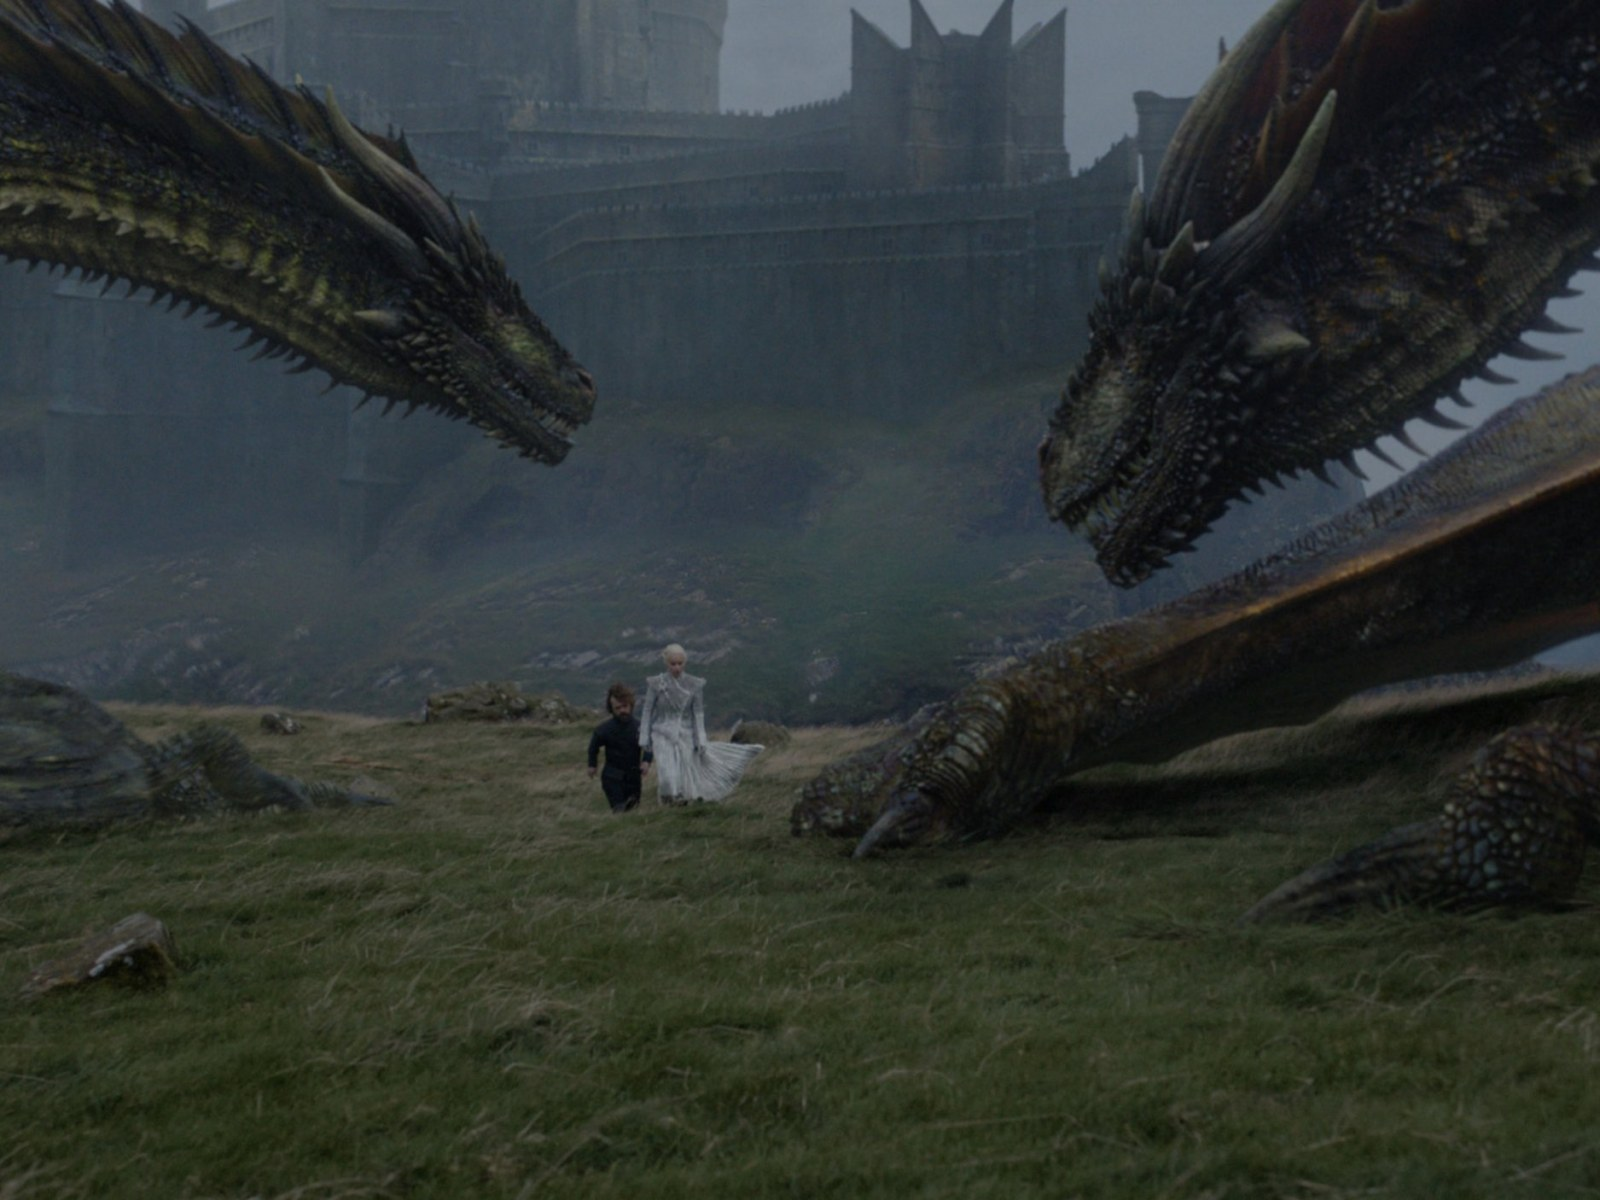 Game Of Thrones Season 7 Episode 6 Spoilers And Theories For